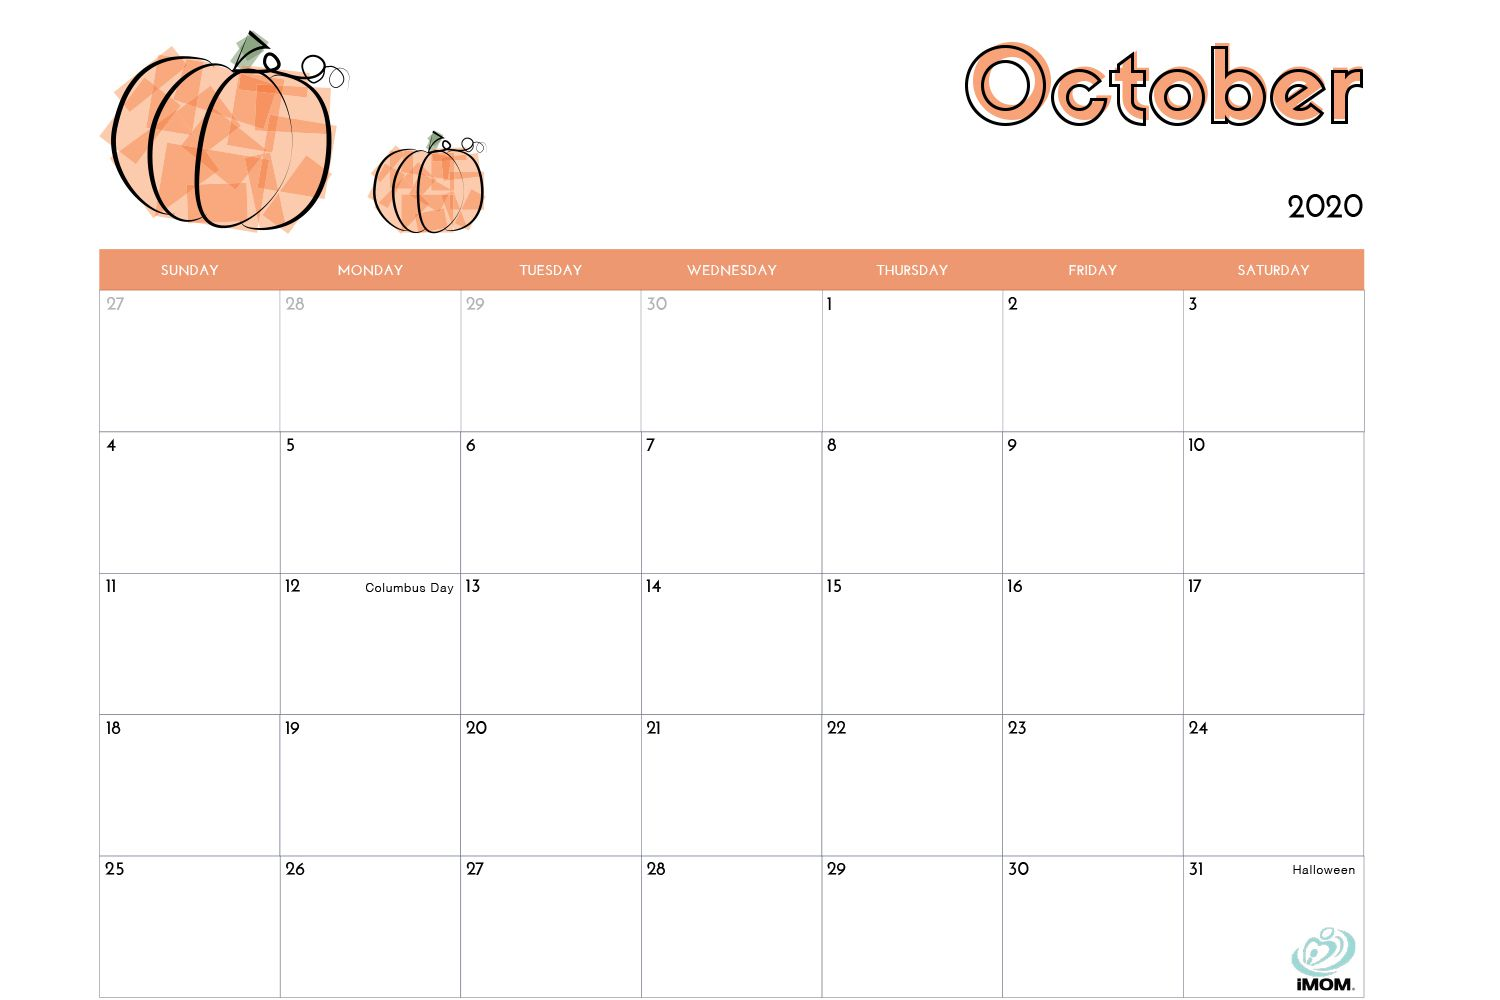 Free Calendar Templates for Parents and Kids